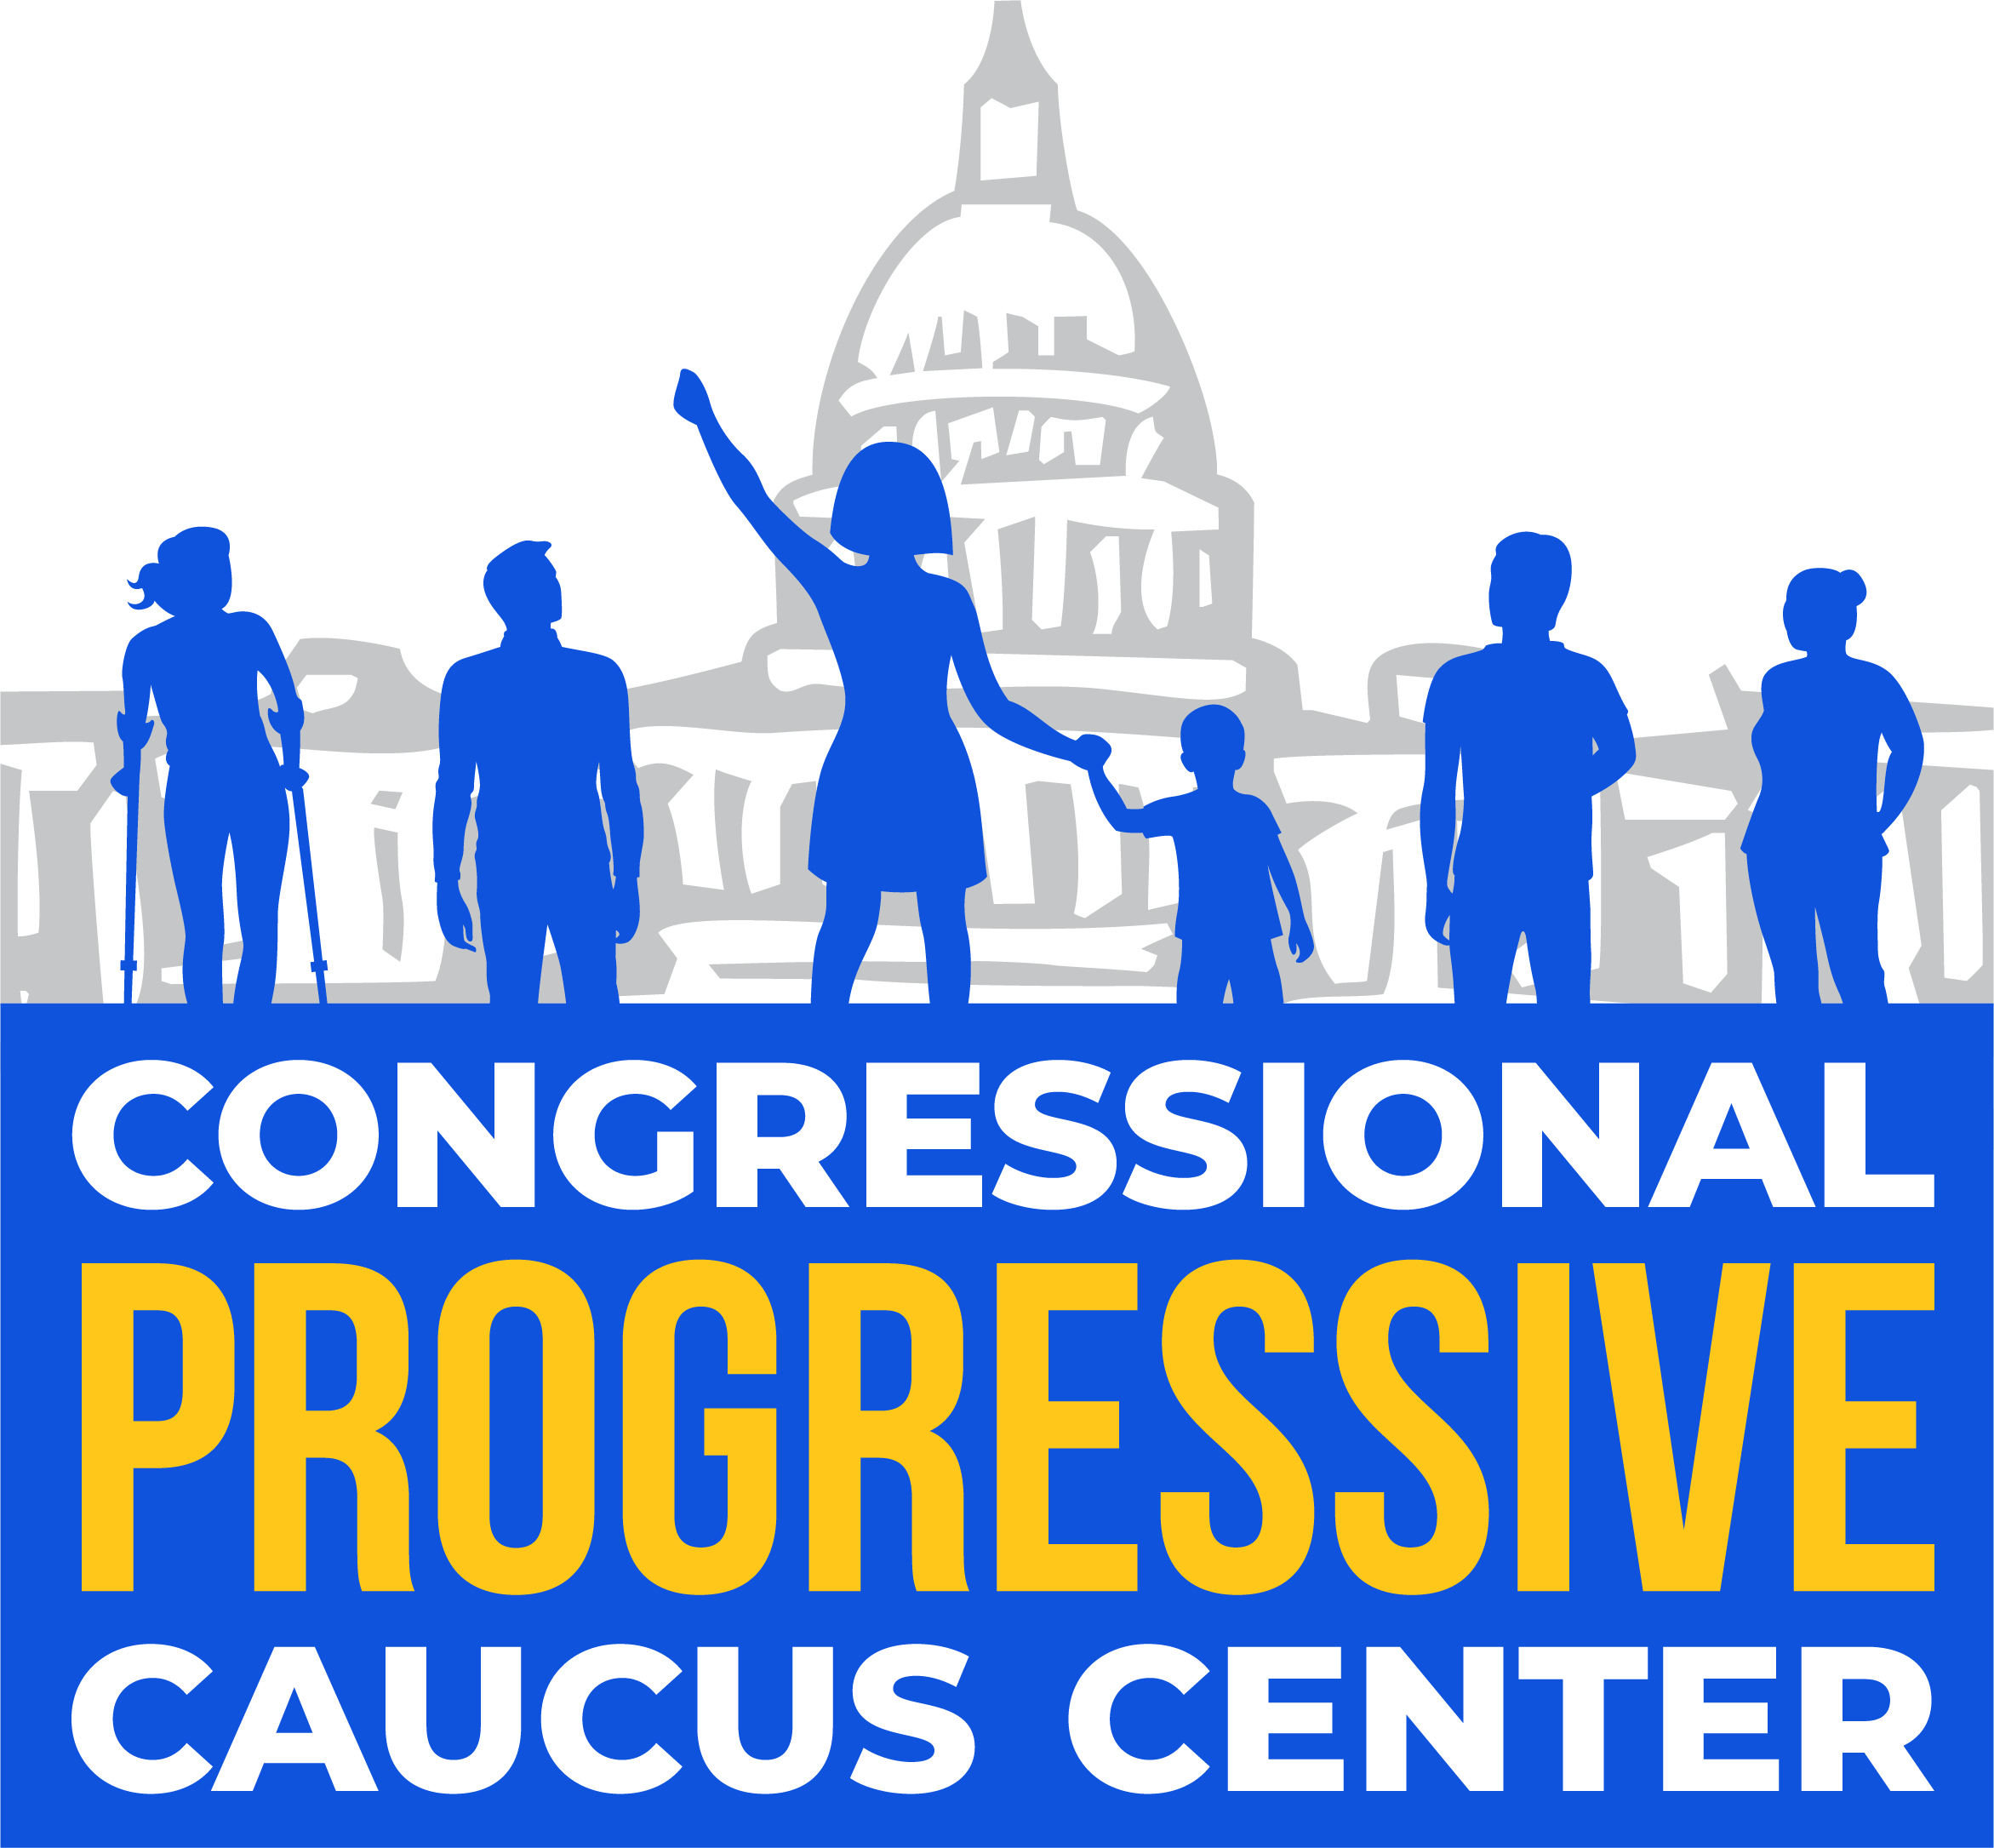 Congressional Progressive Caucus Center